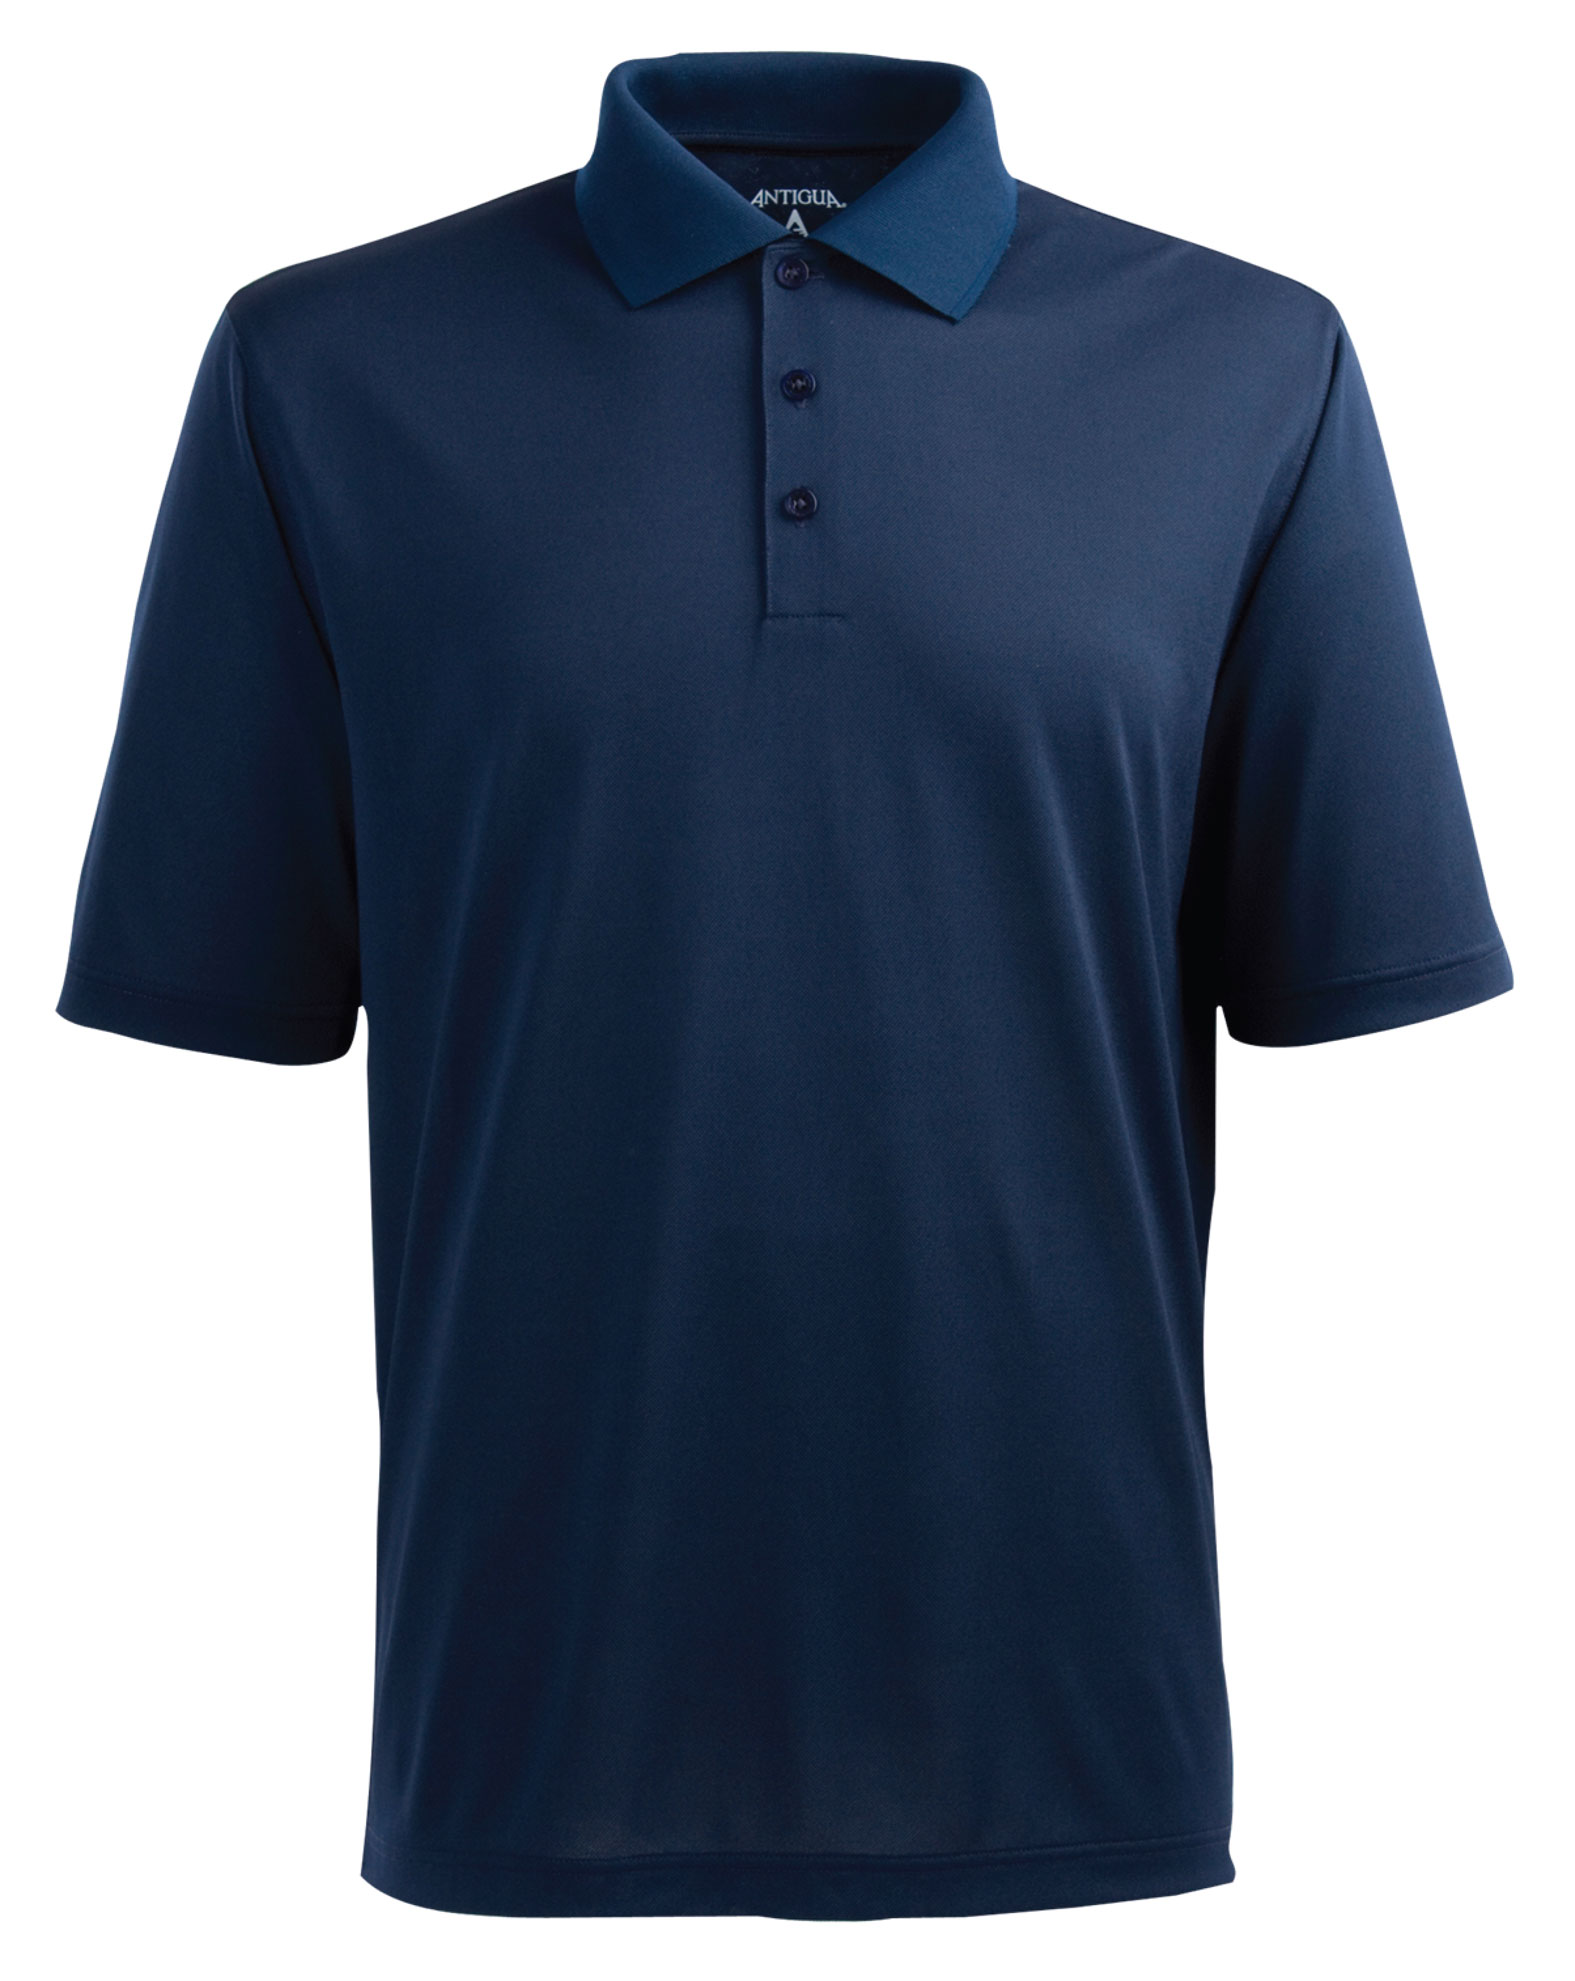 Antigua Mens Pique Xtra-Lite Polo